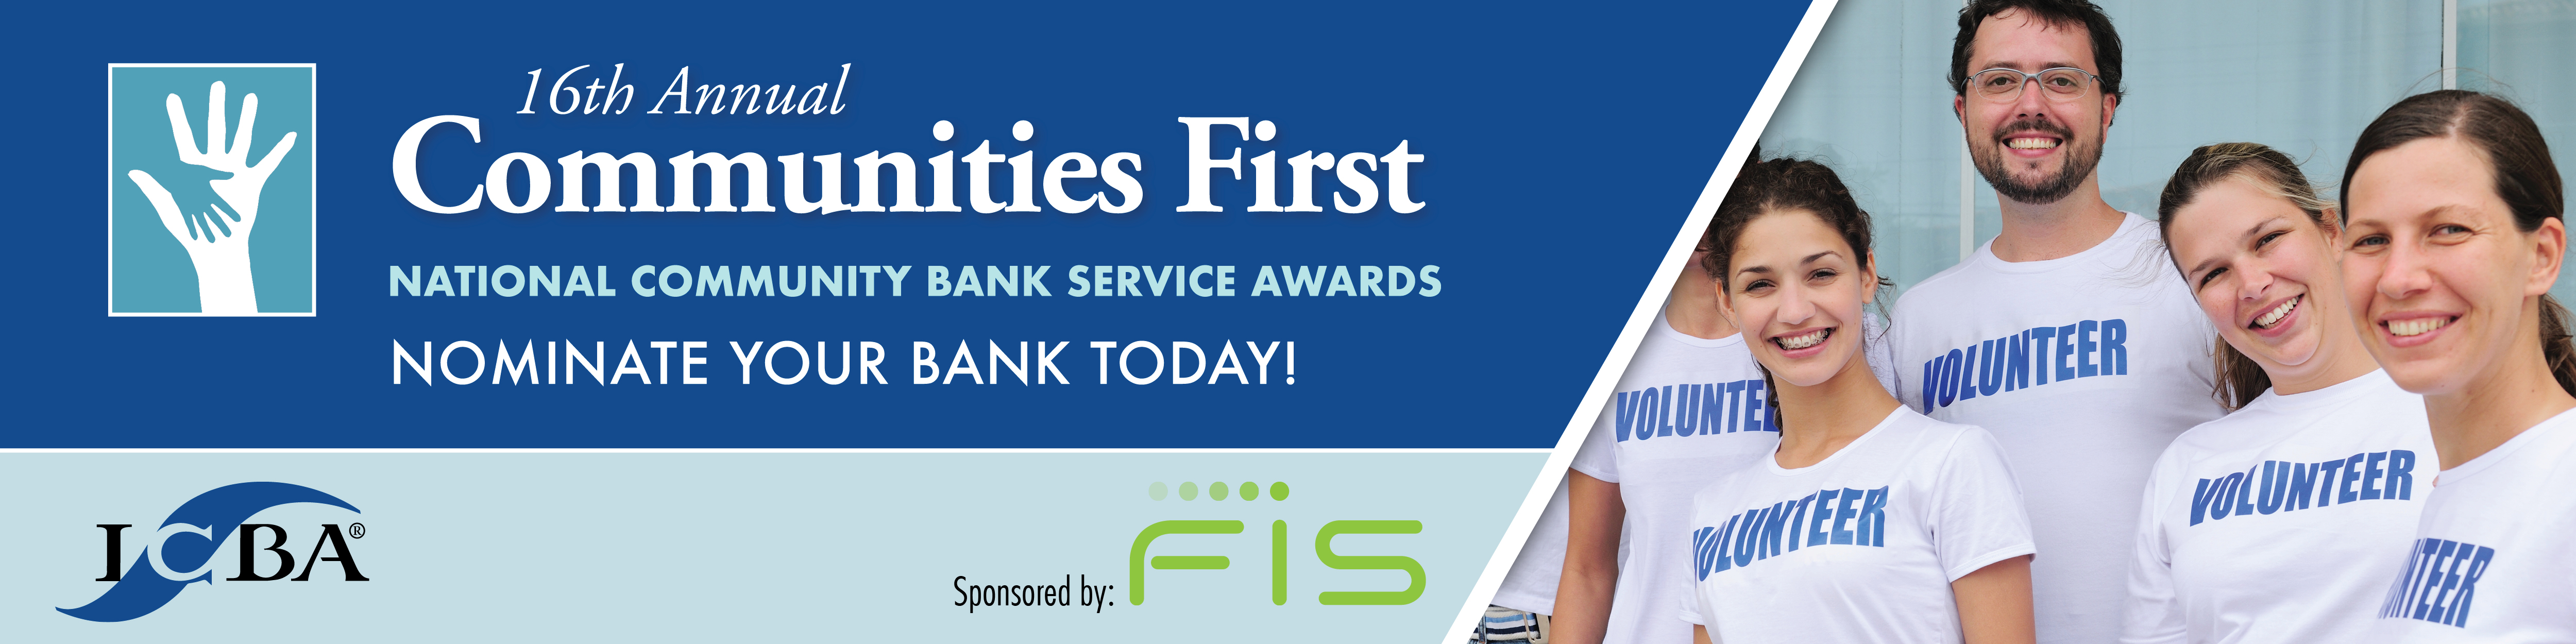 Community Bank Service Awards